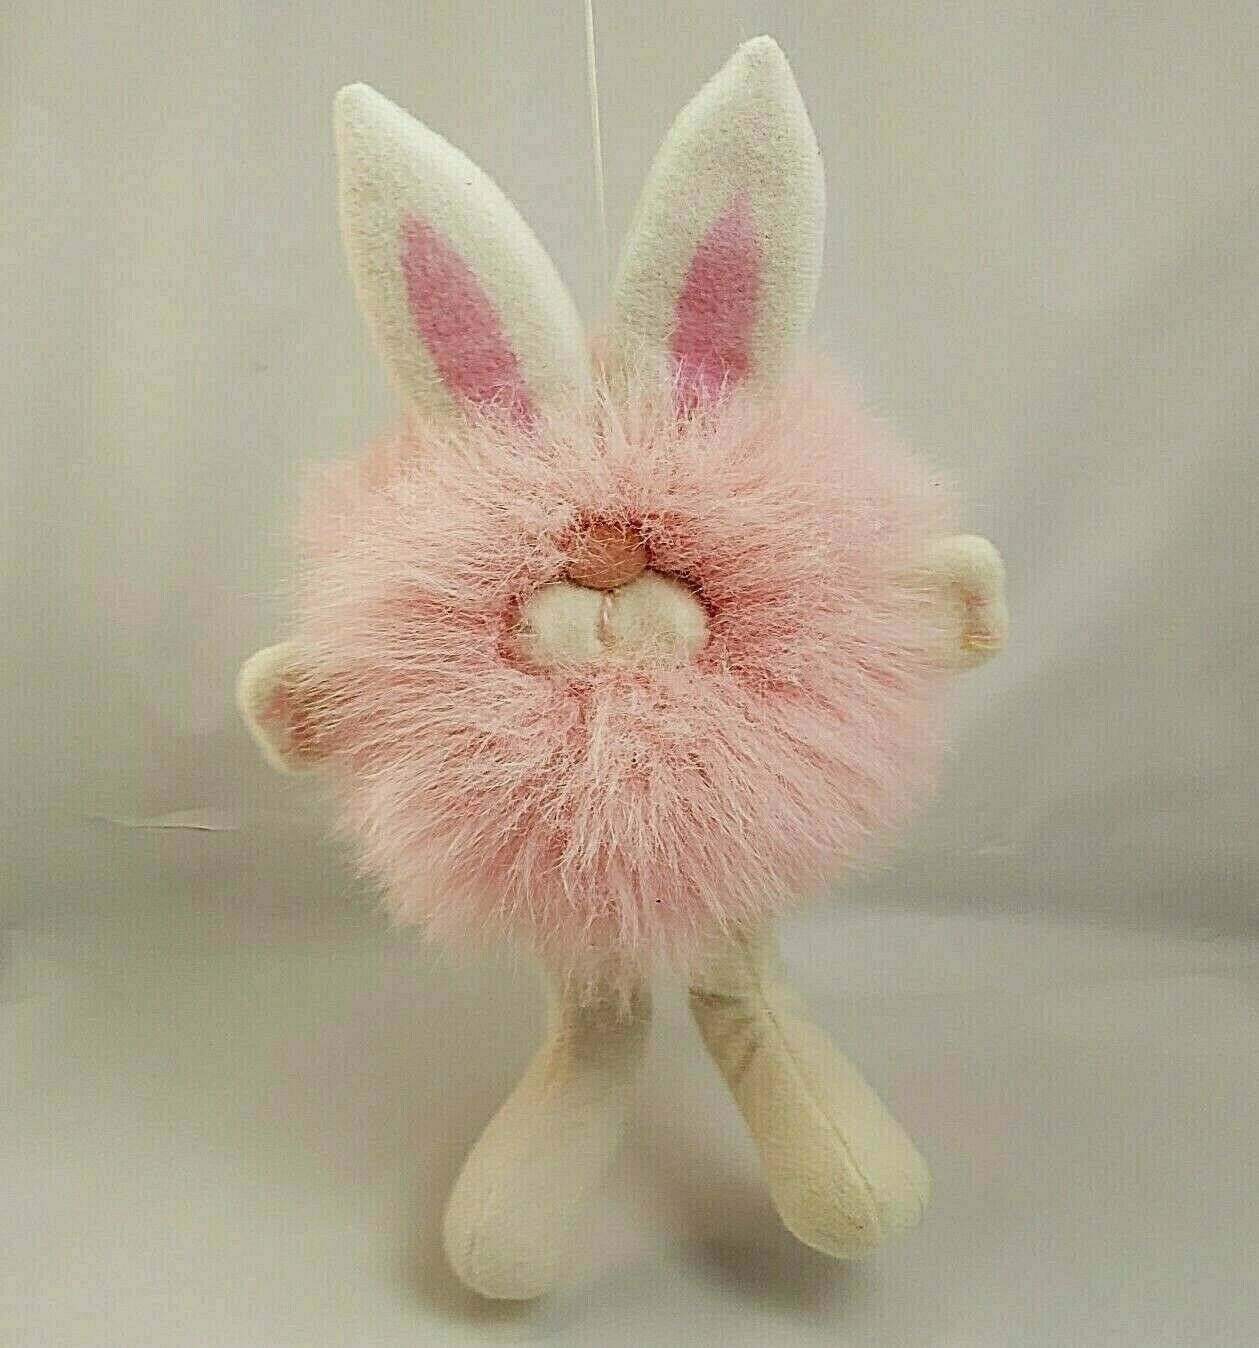 Primary image for Vintage Dakin Plush Bunny Rabbit Pink Pom Pom Minky Puff Ball Stuffed Animal 10""